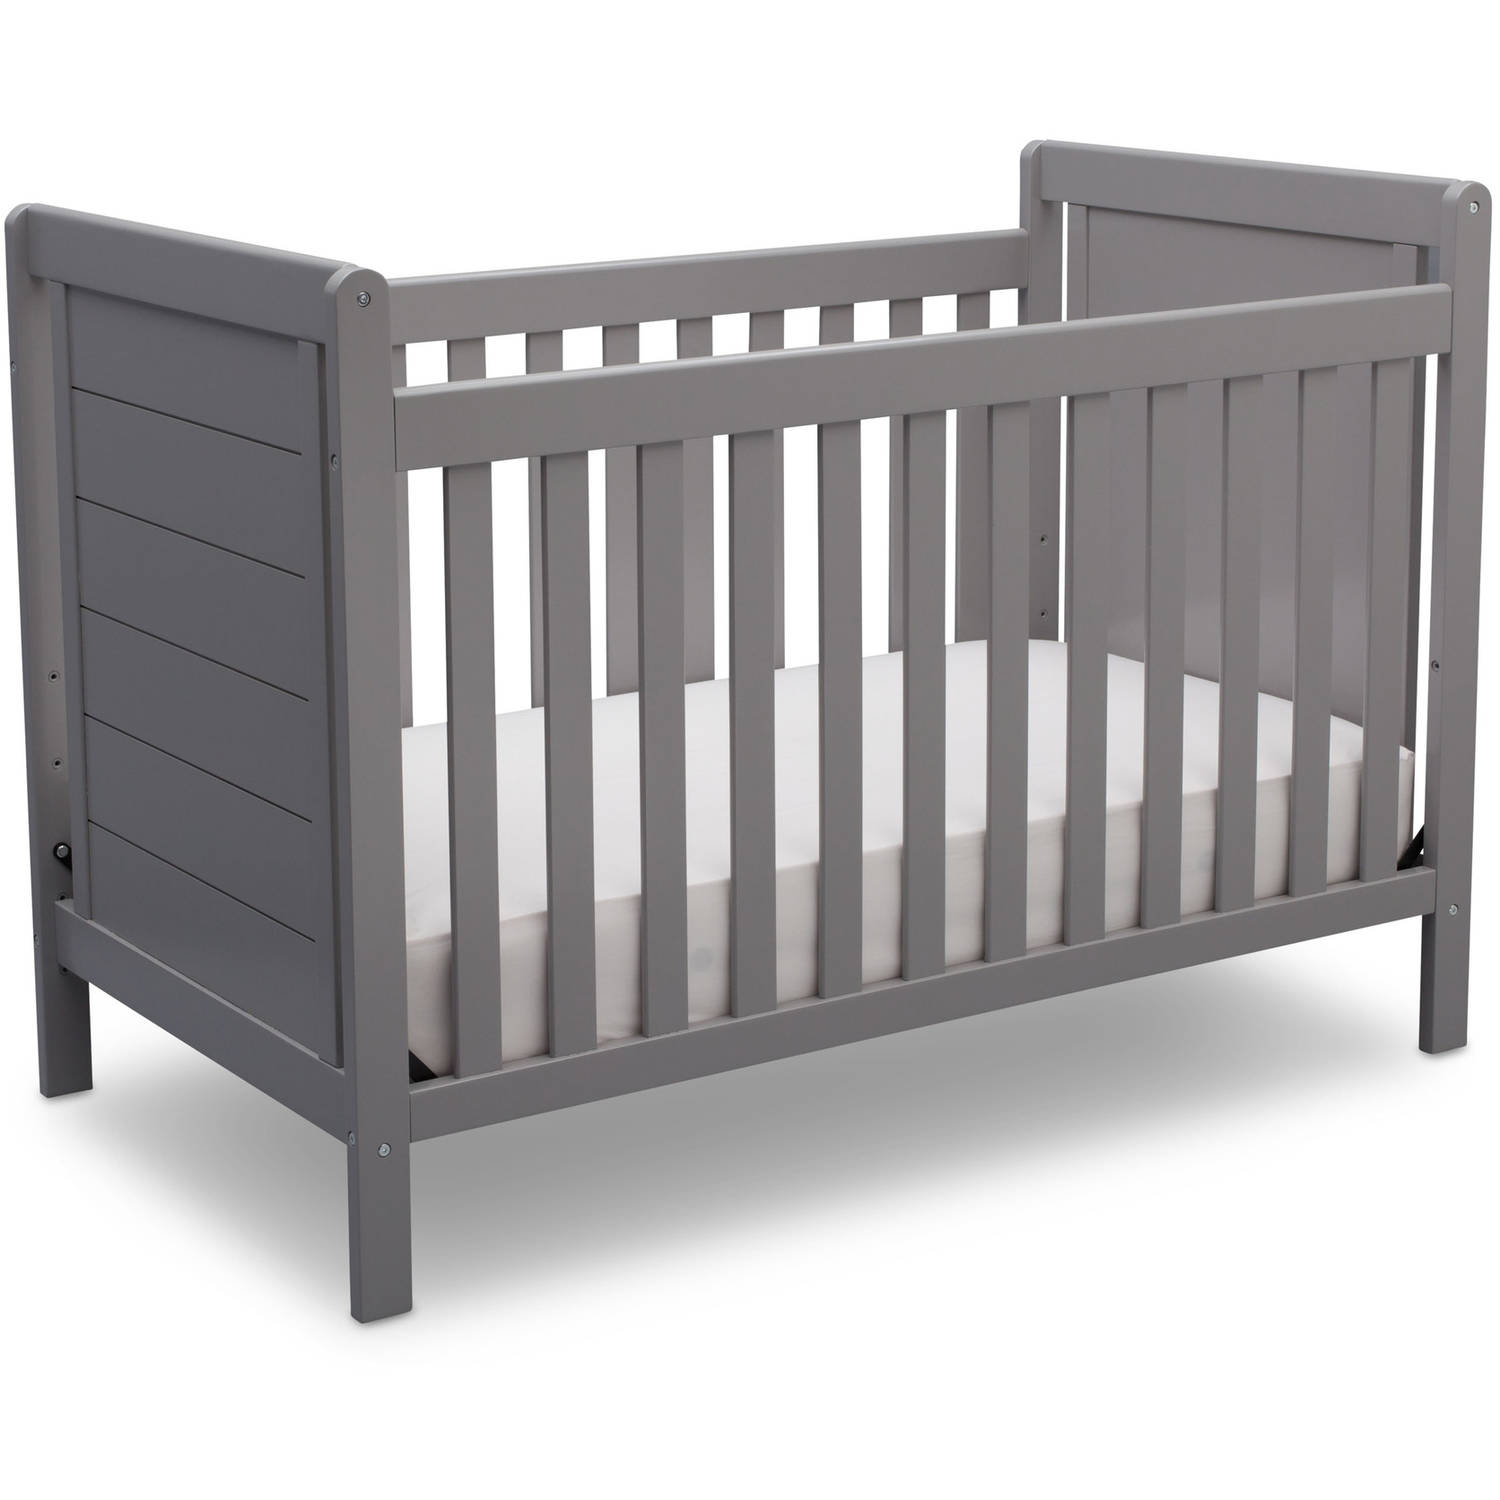 Delta Children Sunnyvale 4-in-1 Convertible Crib Gray